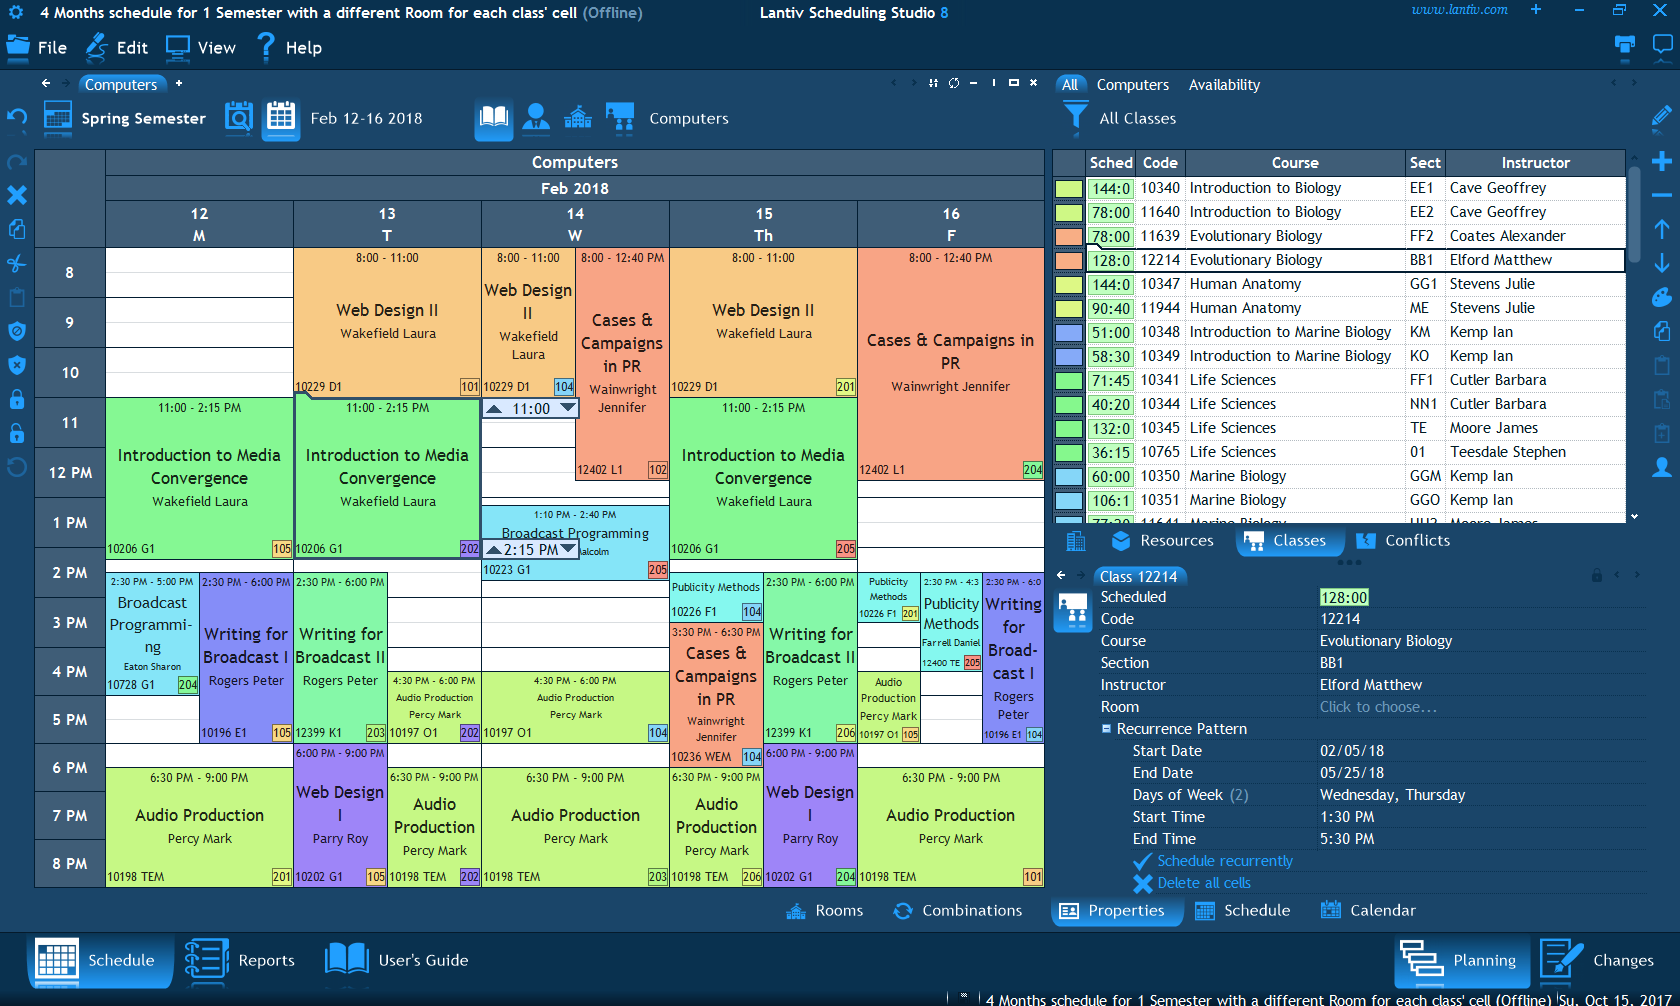 screenshot of college scheduling software class schedule for one week